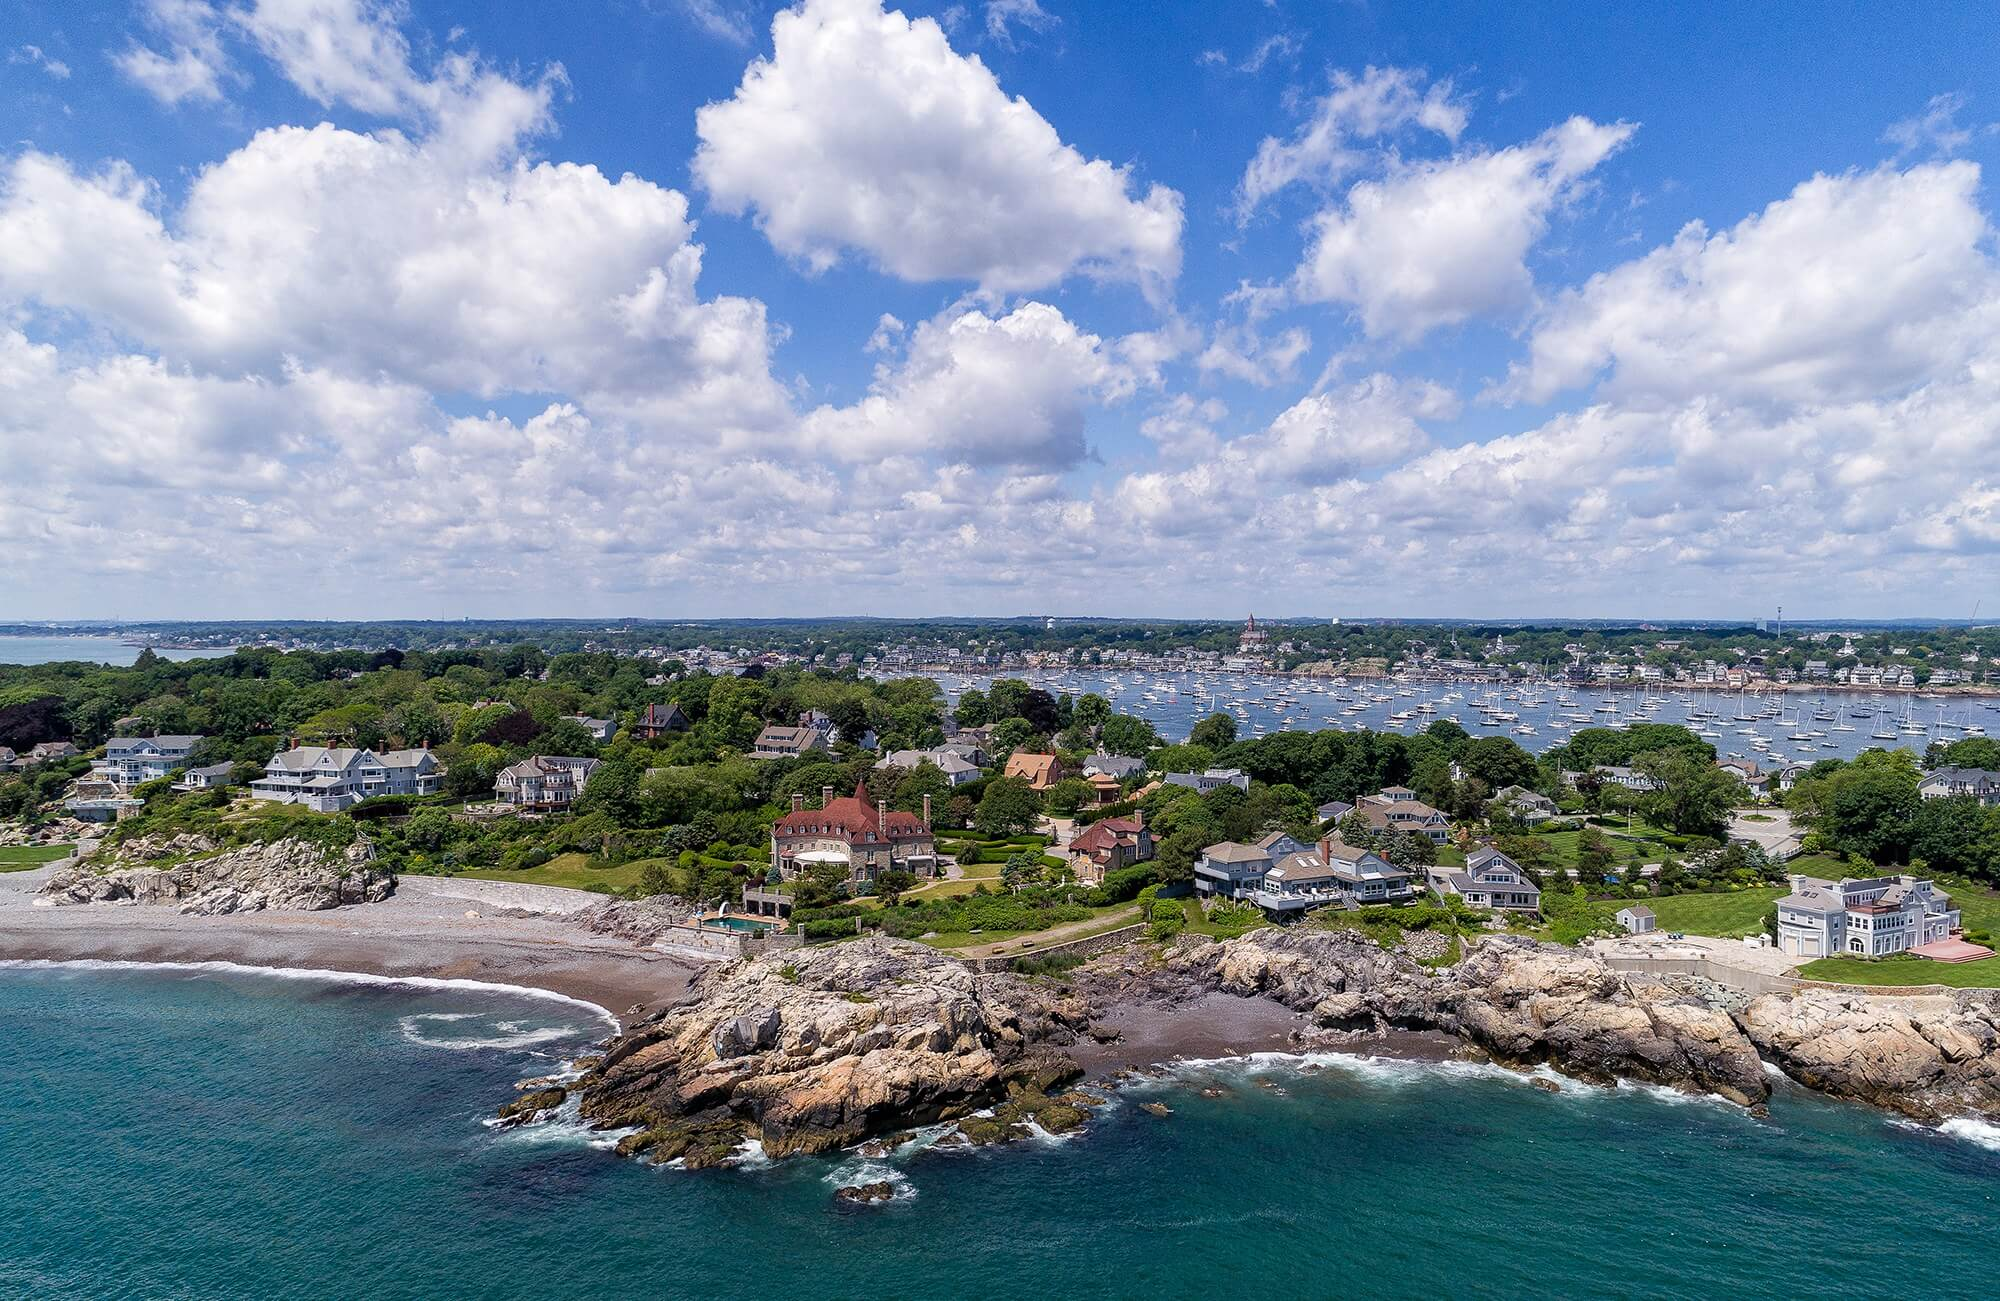 These Boston Suburbs are Summertime Hotspots